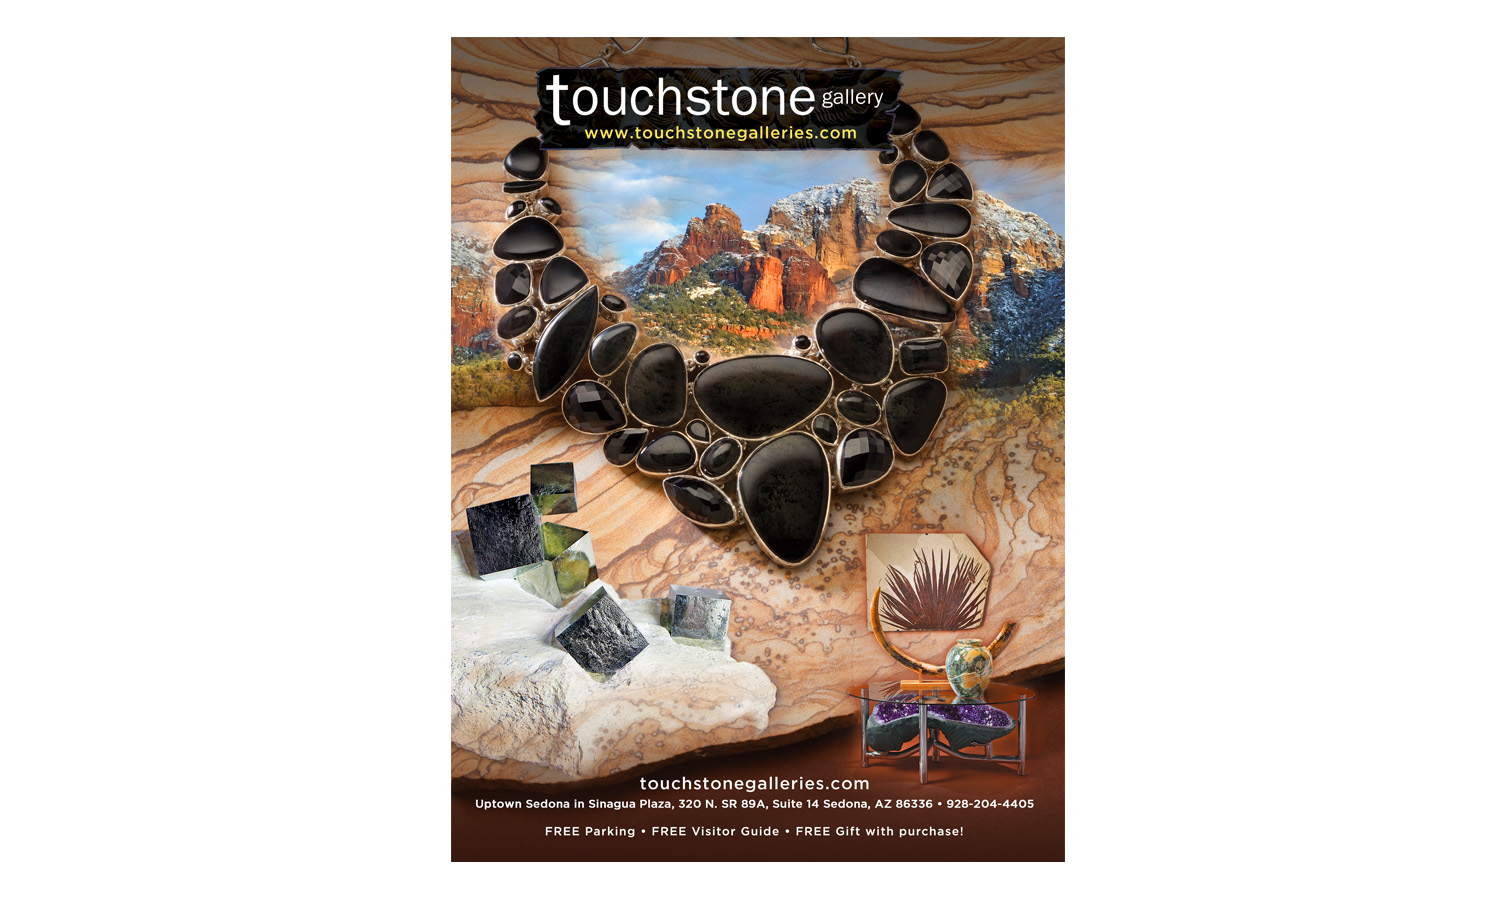 Touchstone winter17.jpg